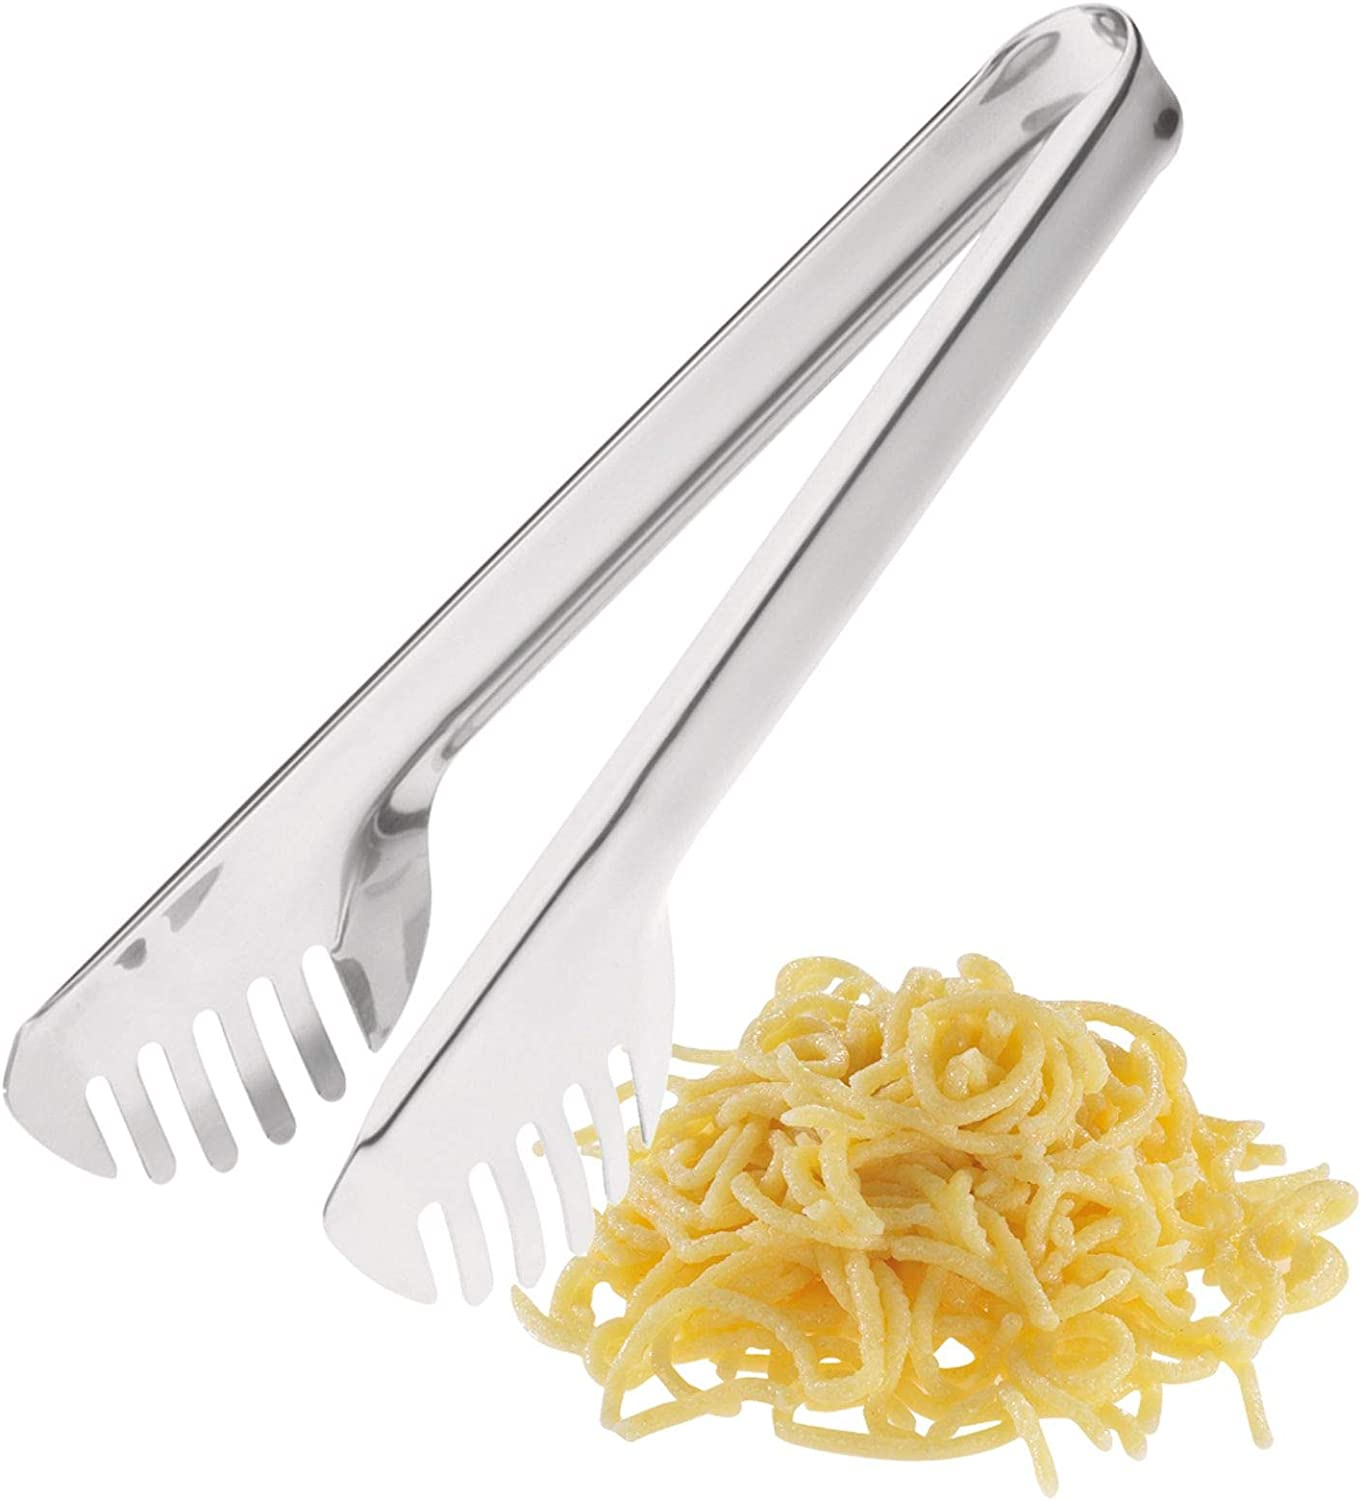 Westmark Salad-/Pasta Serving Tongs, 23.8 x 5.2 x 2.2 cm, Stainless Steel